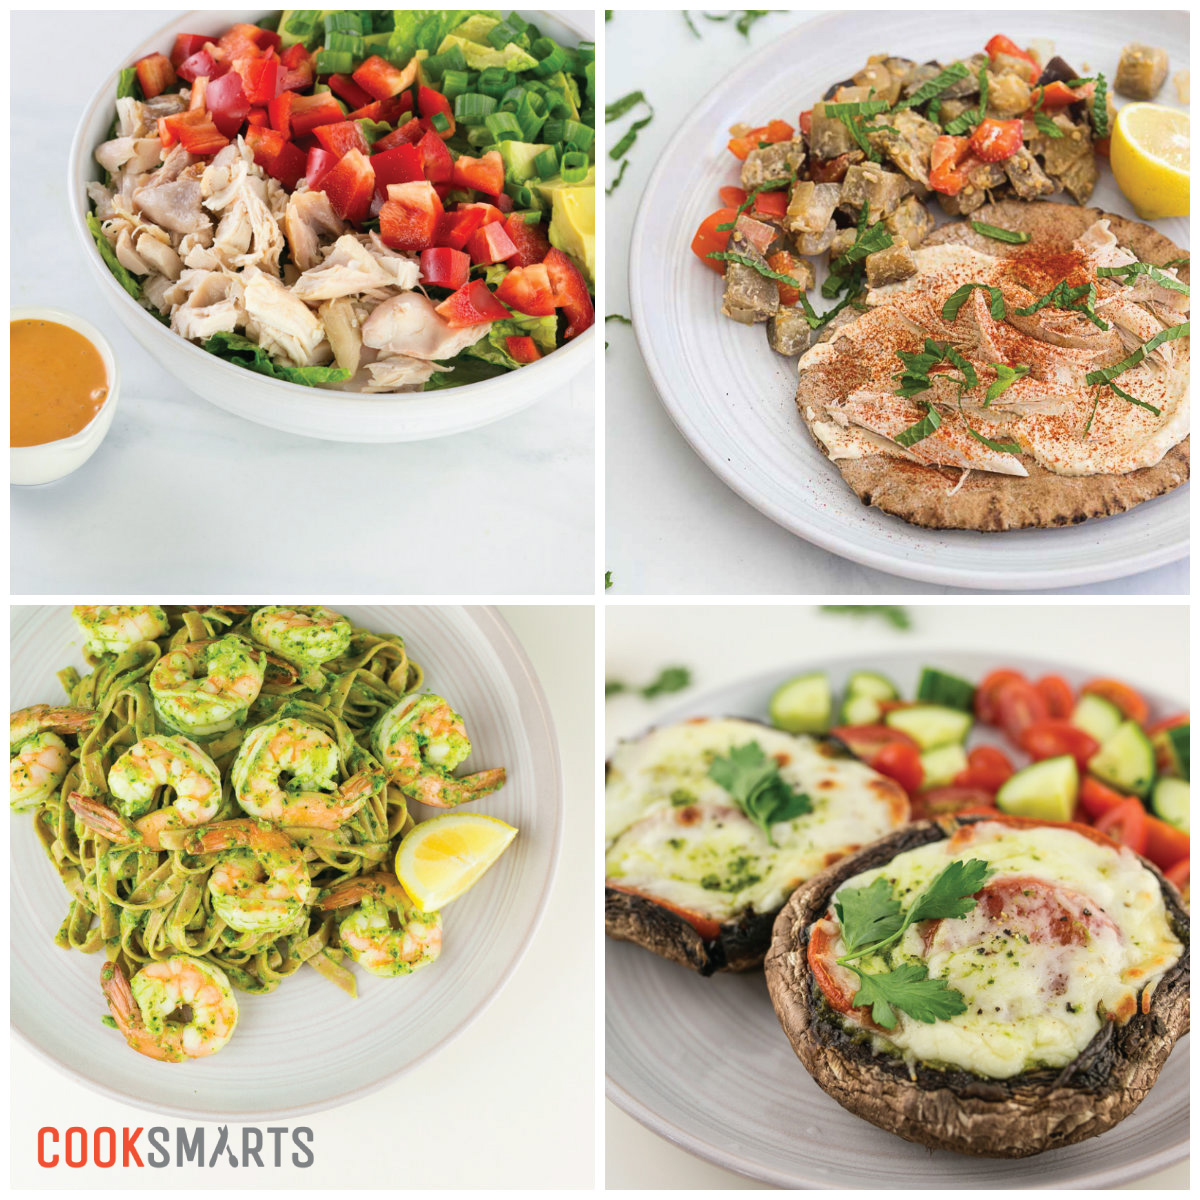 Cook Smarts' Weekly Meal Plan Service | Menu for 8/4/14 via @cooksmarts